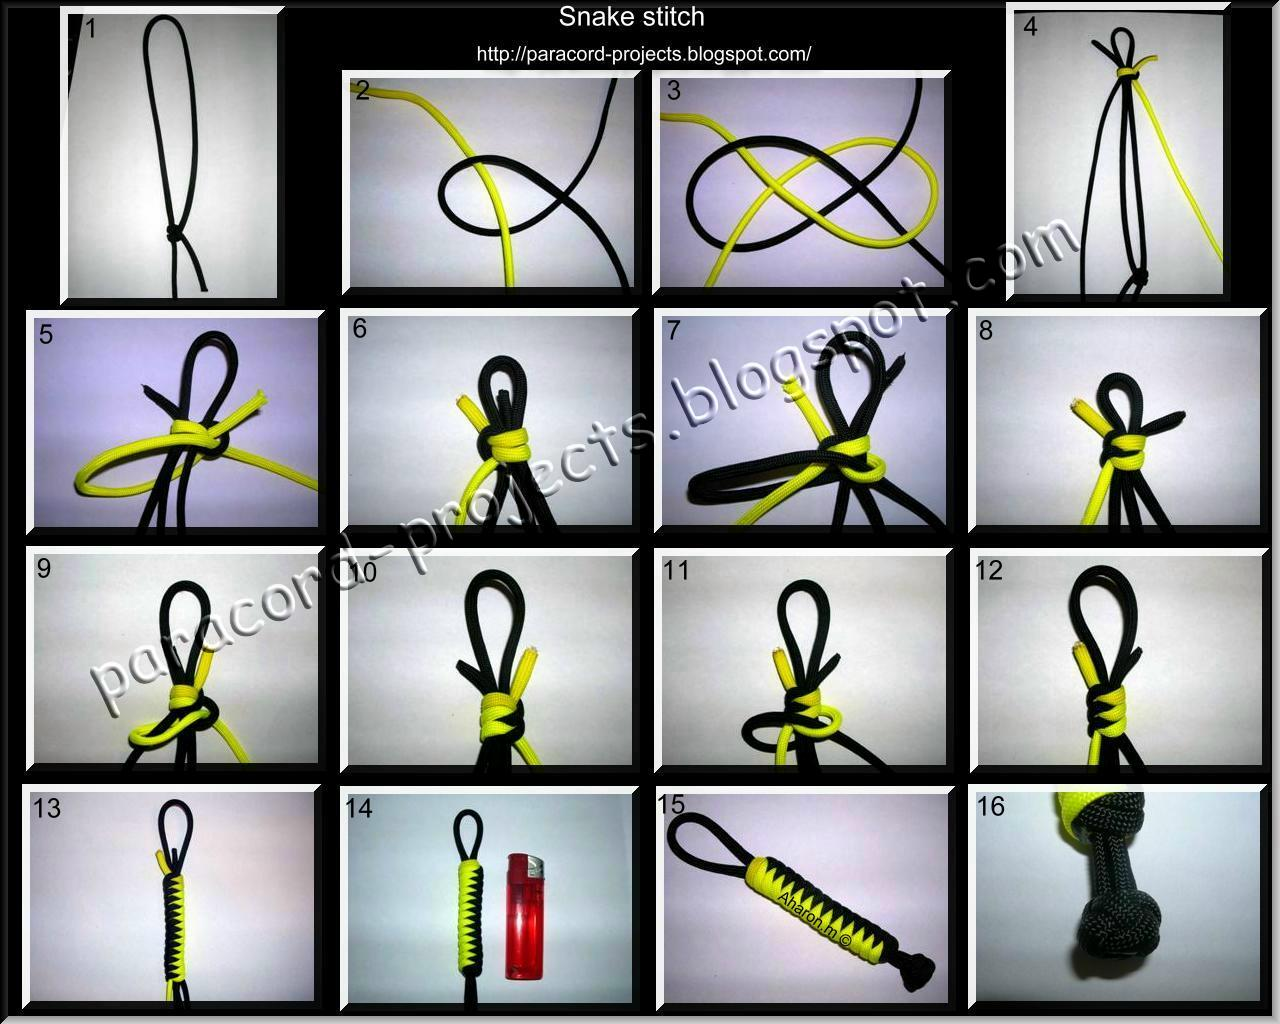 Paracord Projects Snake Stitch 2 Colors